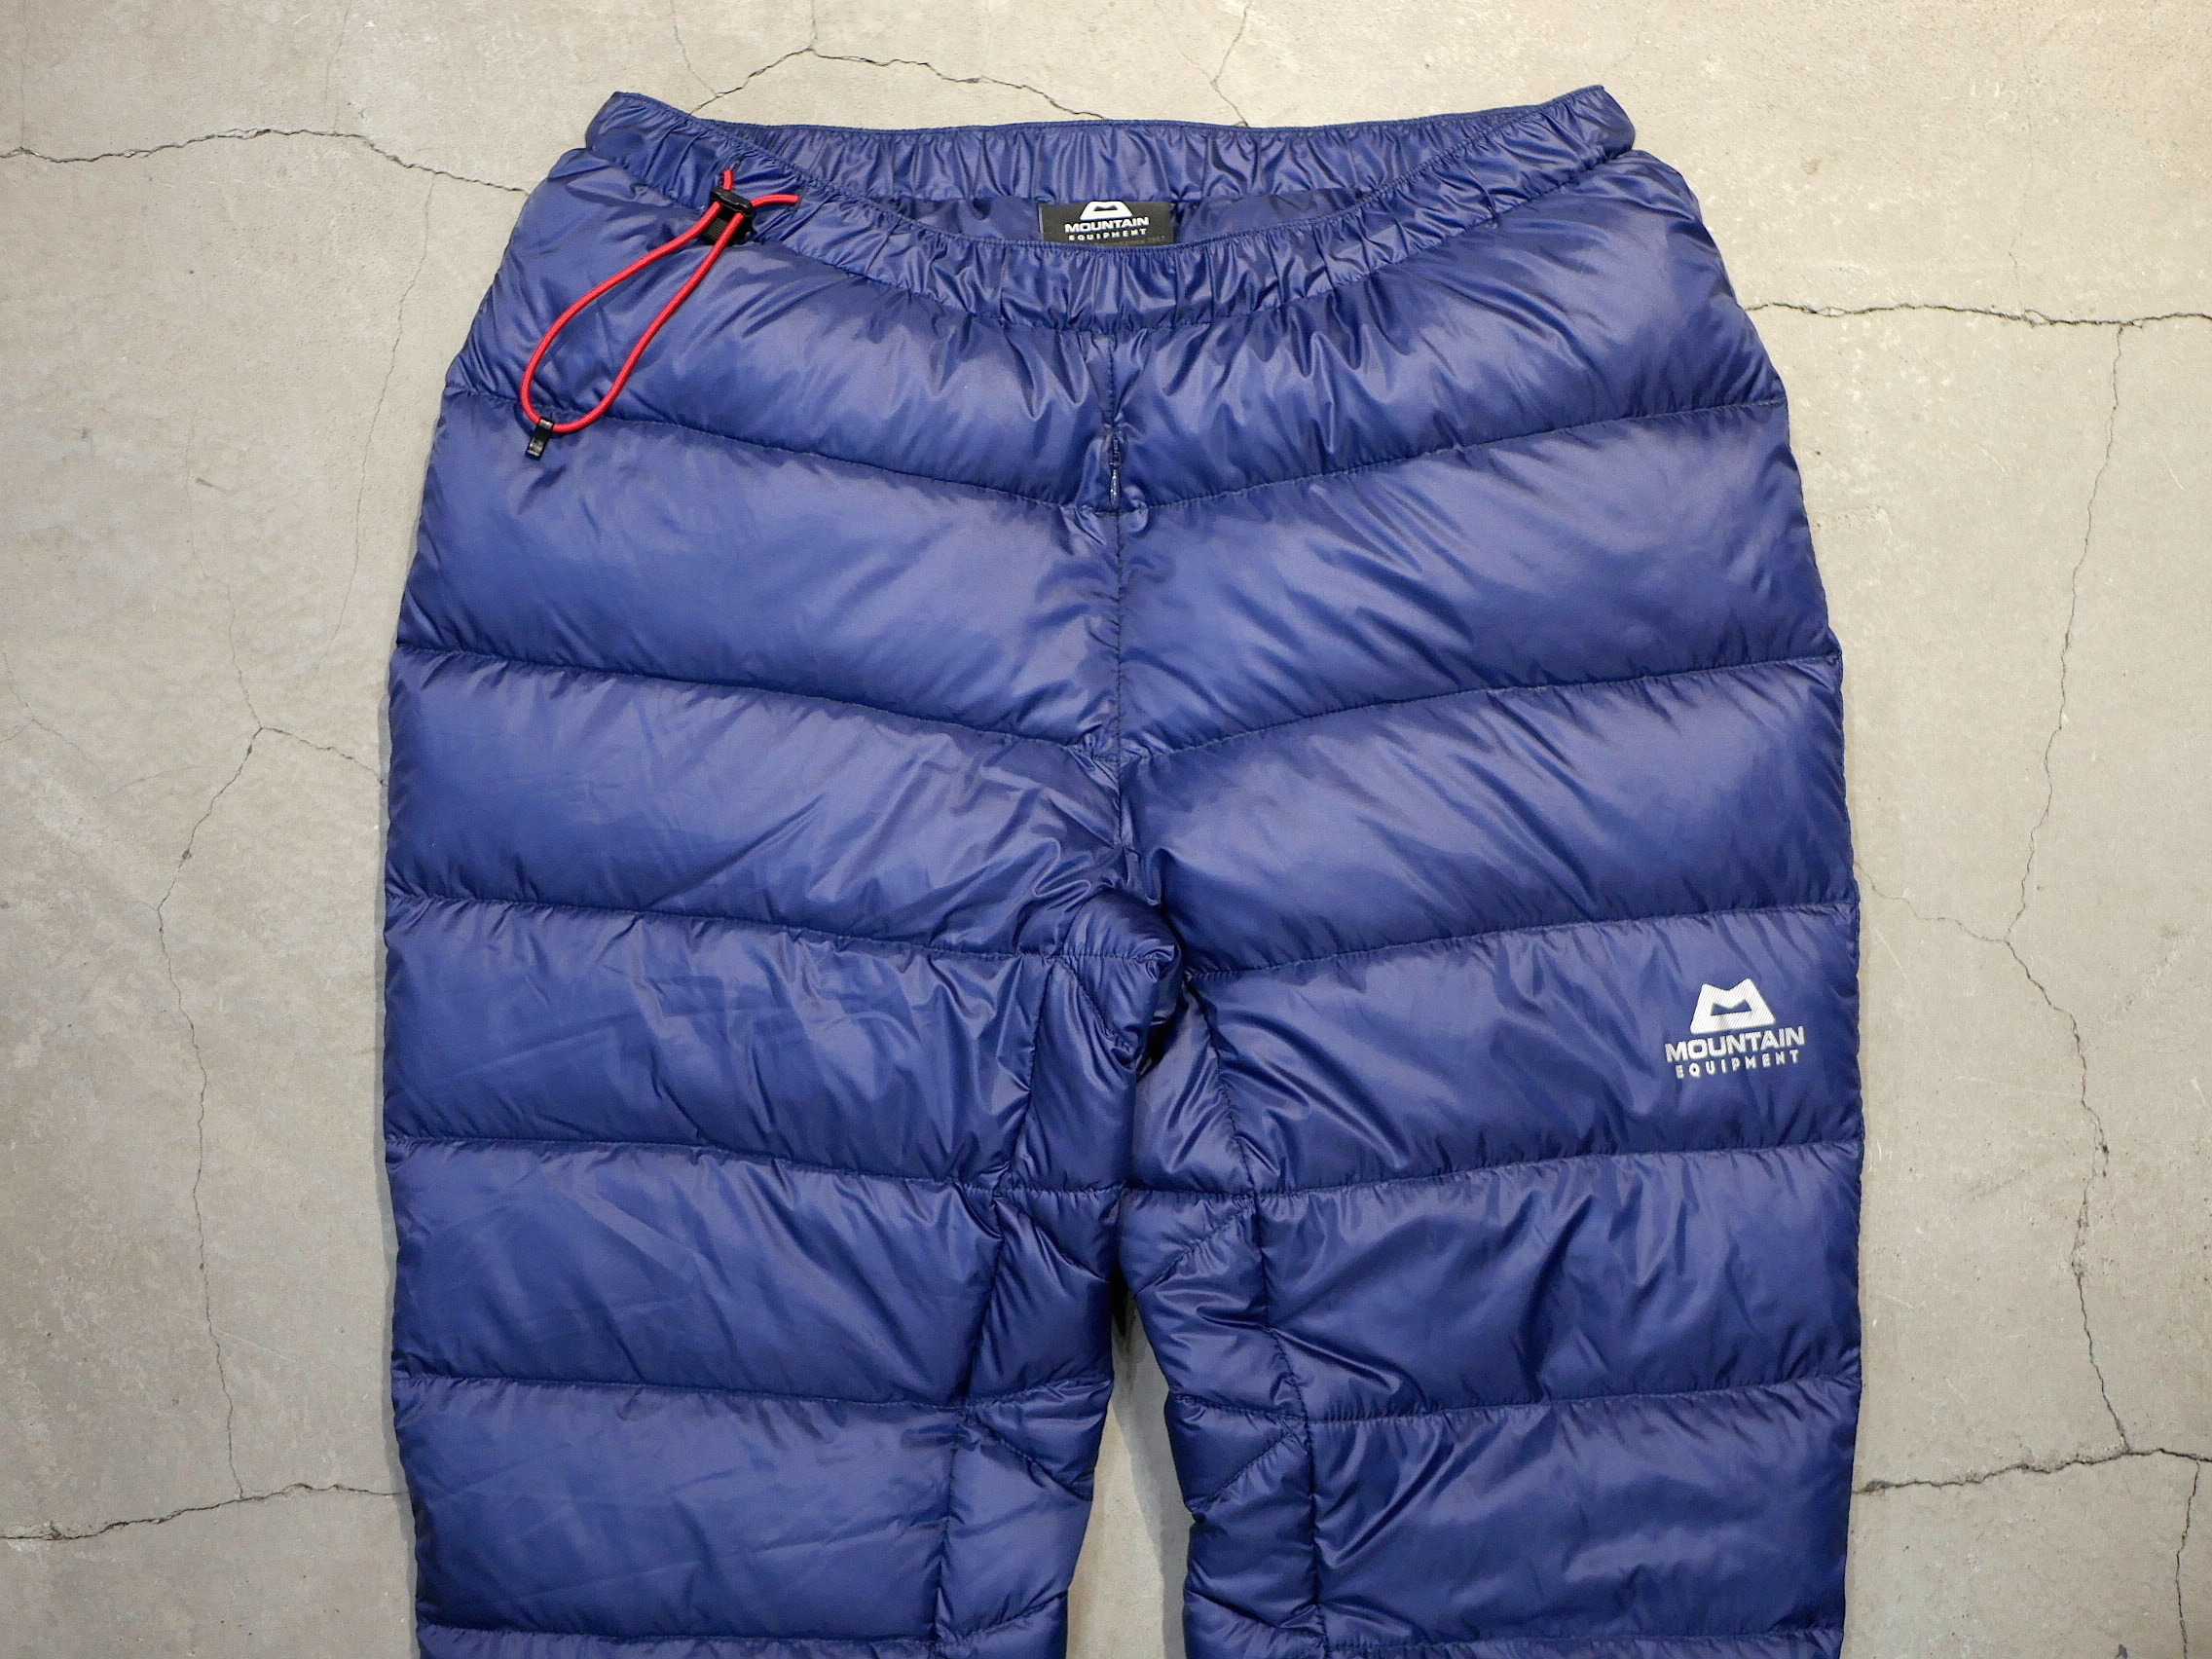 MOUNTAIN EQUIPMENT / POWDER PANTS